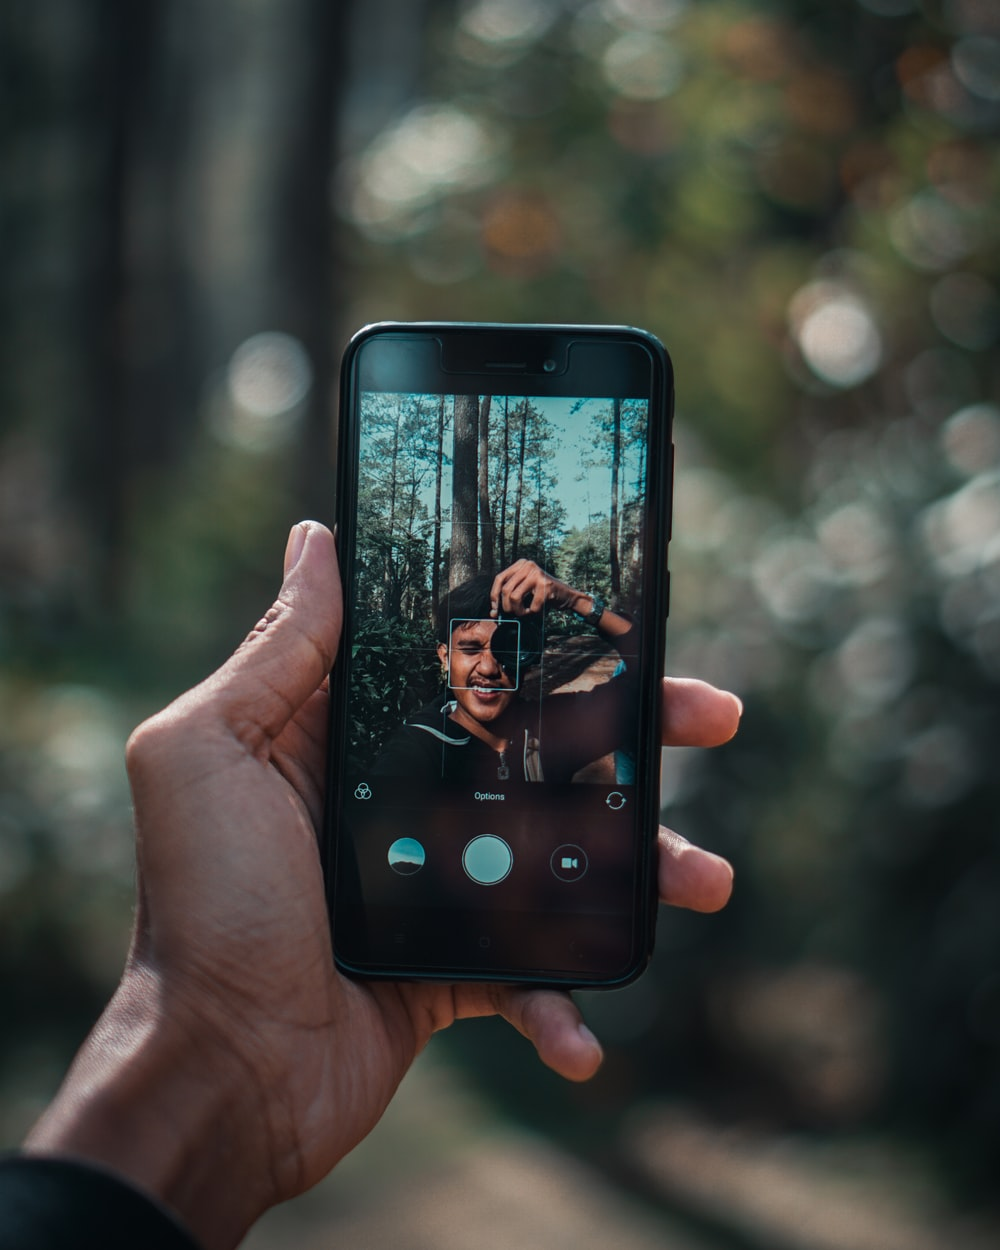 person holding black smartphone while taking selfie under the tree